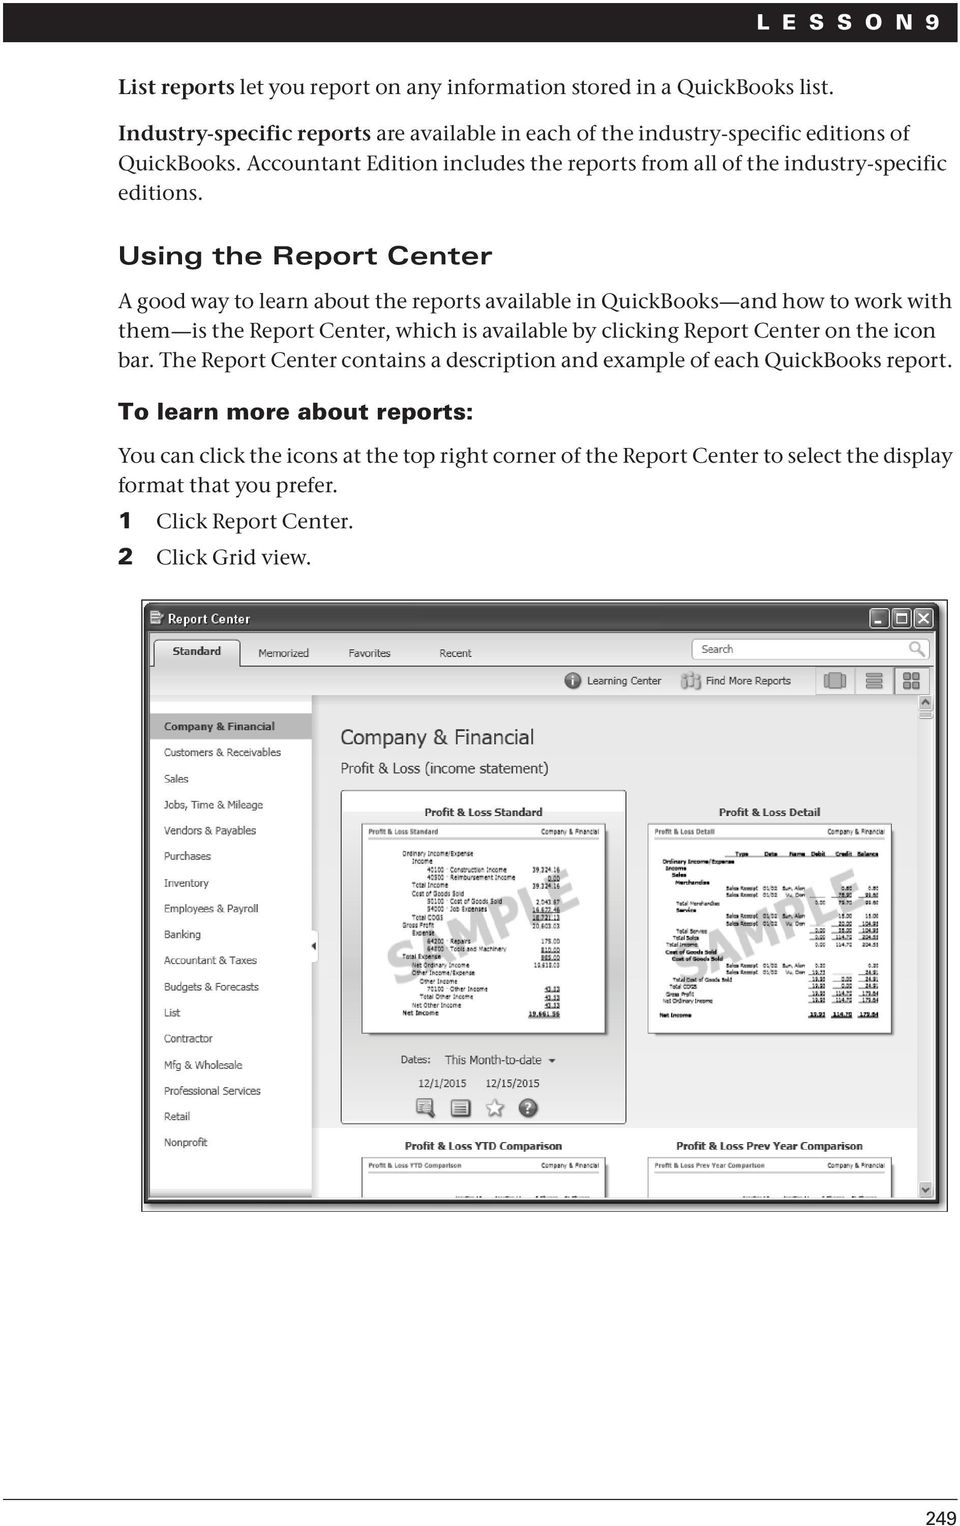 Using the Report Center A good way to learn about the reports available in QuickBooks and how to work with them is the Report Center, which is available by clicking Report Center on